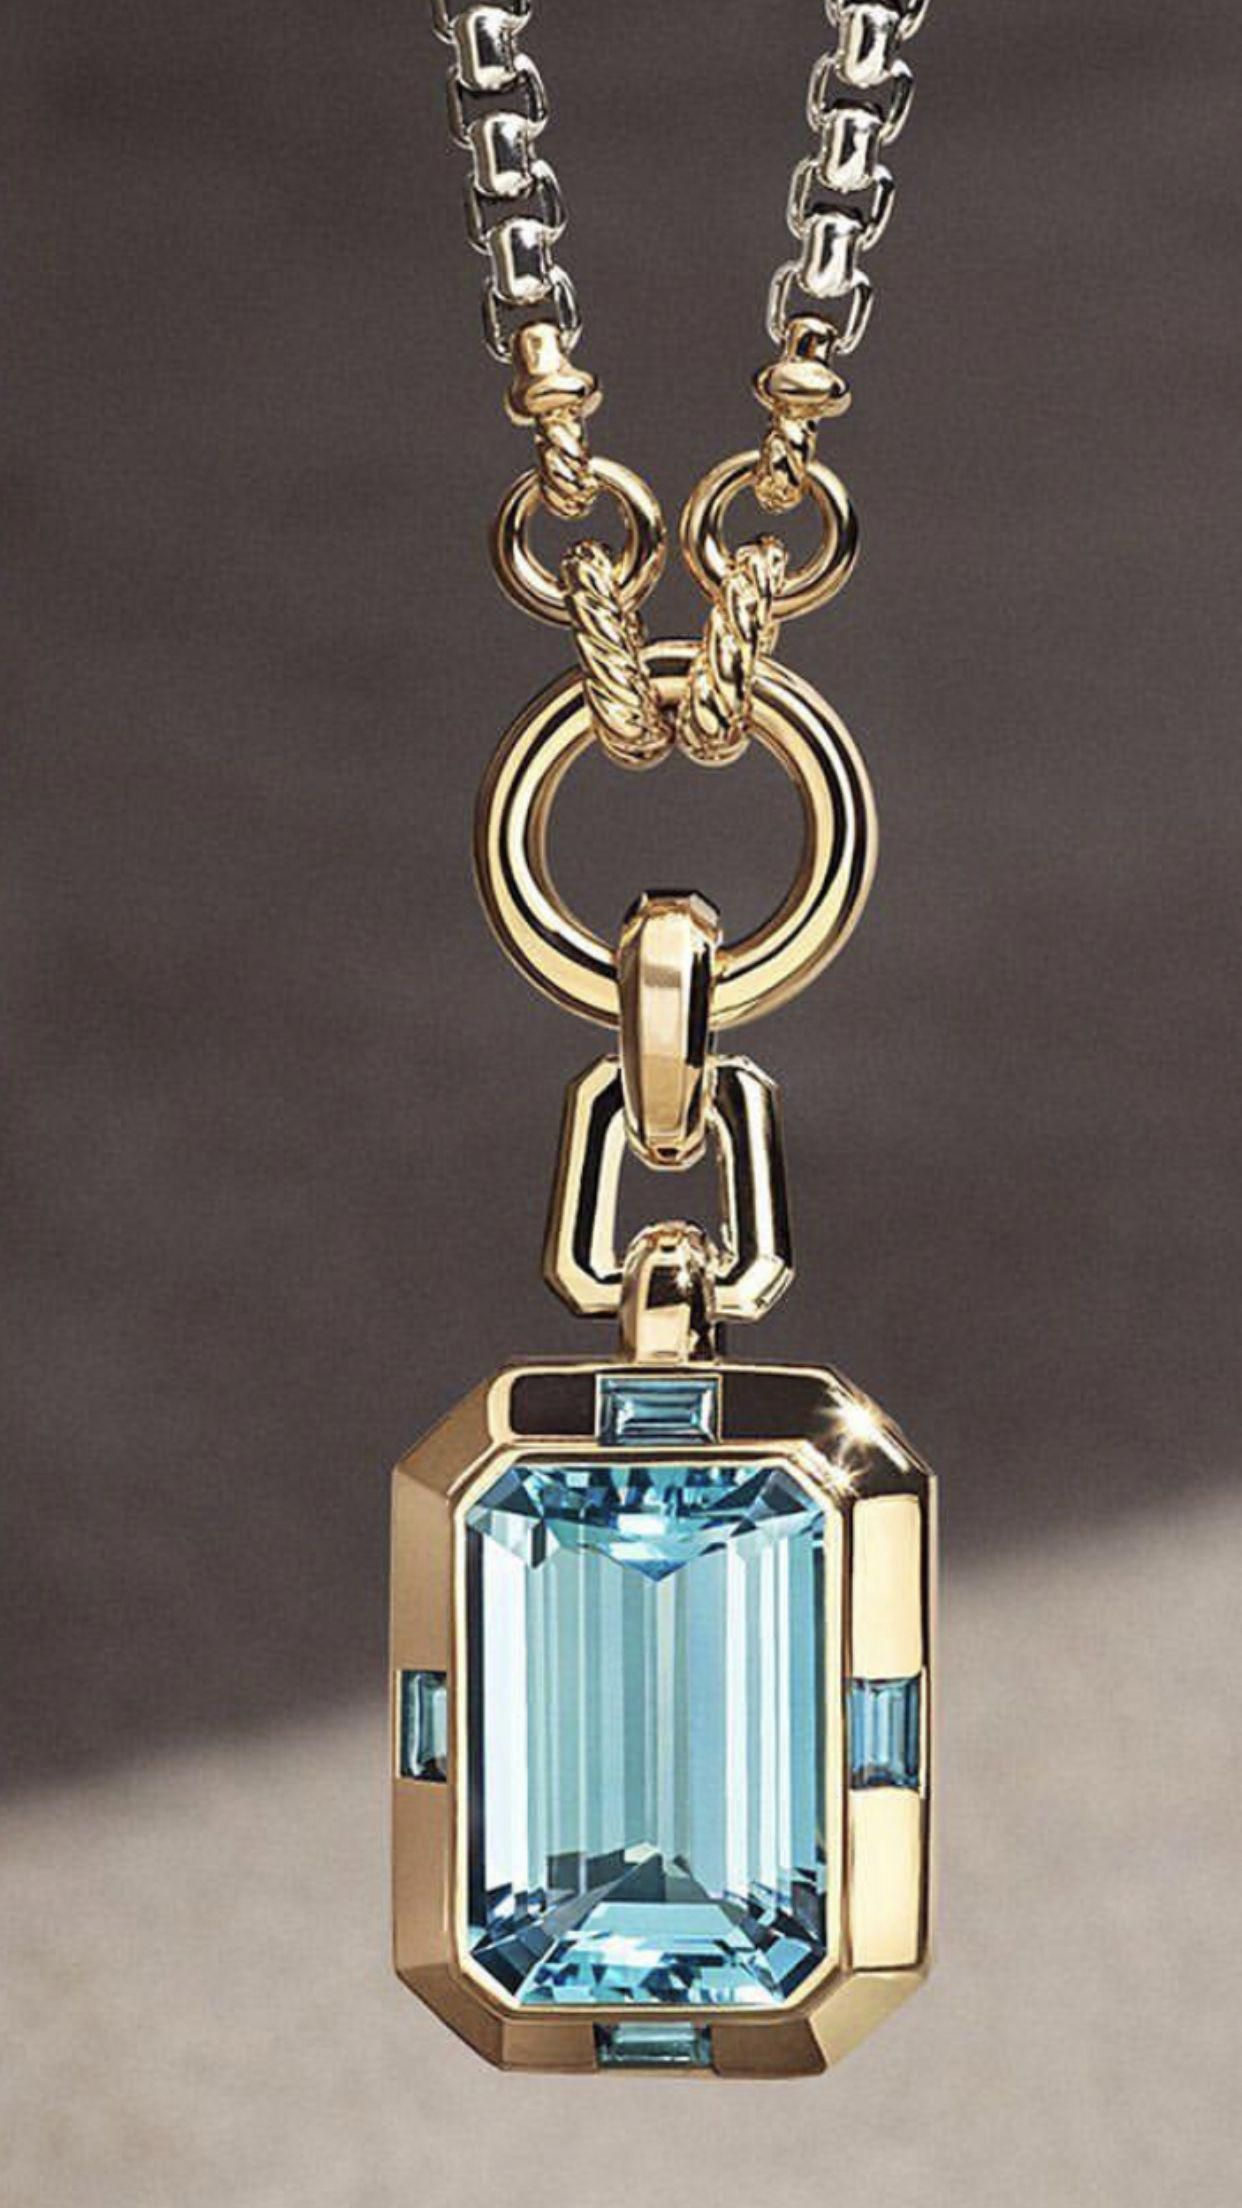 Designer Vintage Style Handmade Jewelry 14k Gold Plated  925 Sterling Silver  Pendant